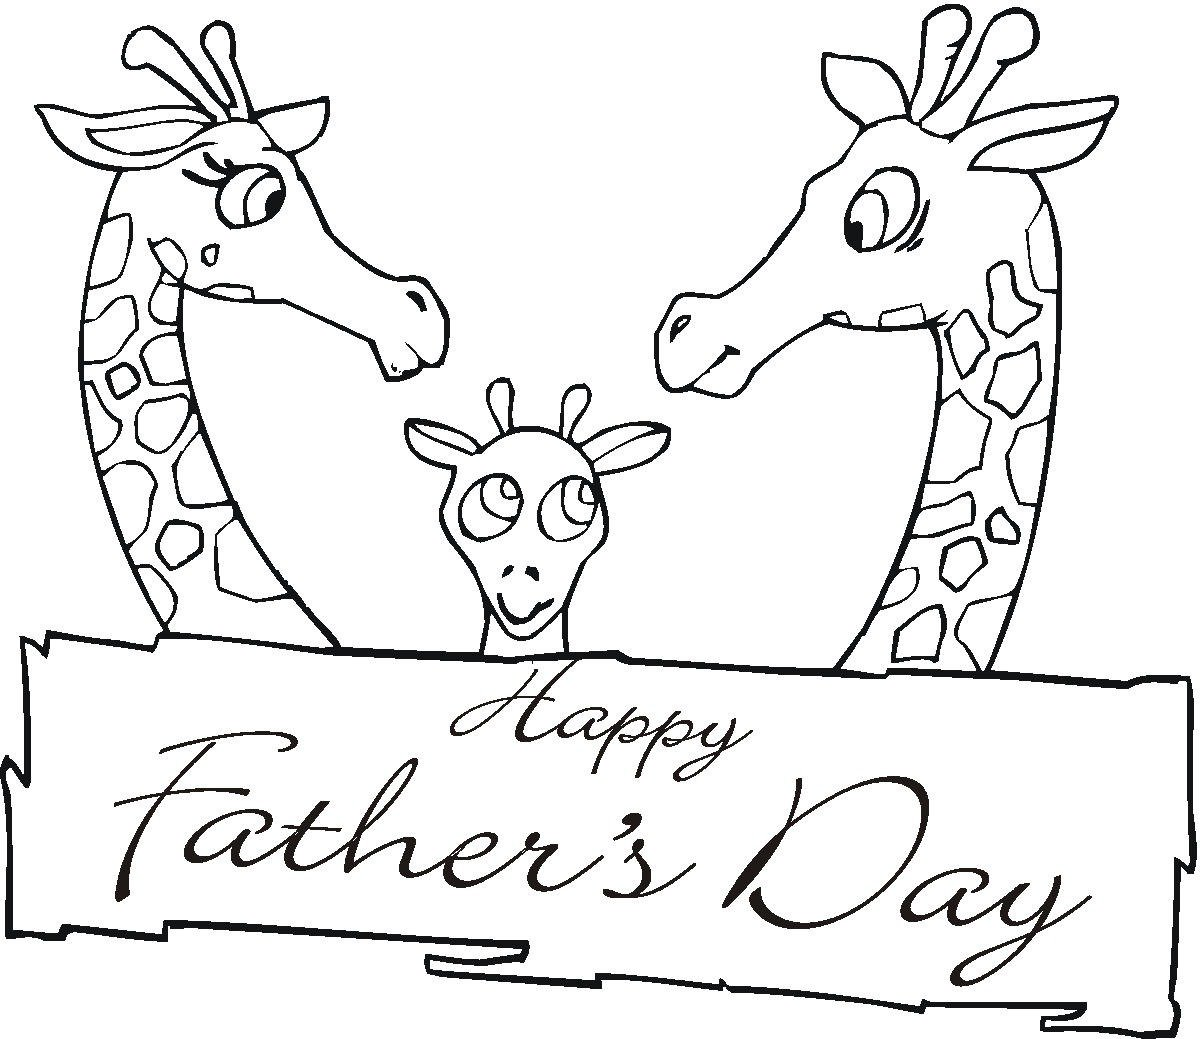 Elegant Fathers Day Coloring Pages 13 About Remodel Seasonal